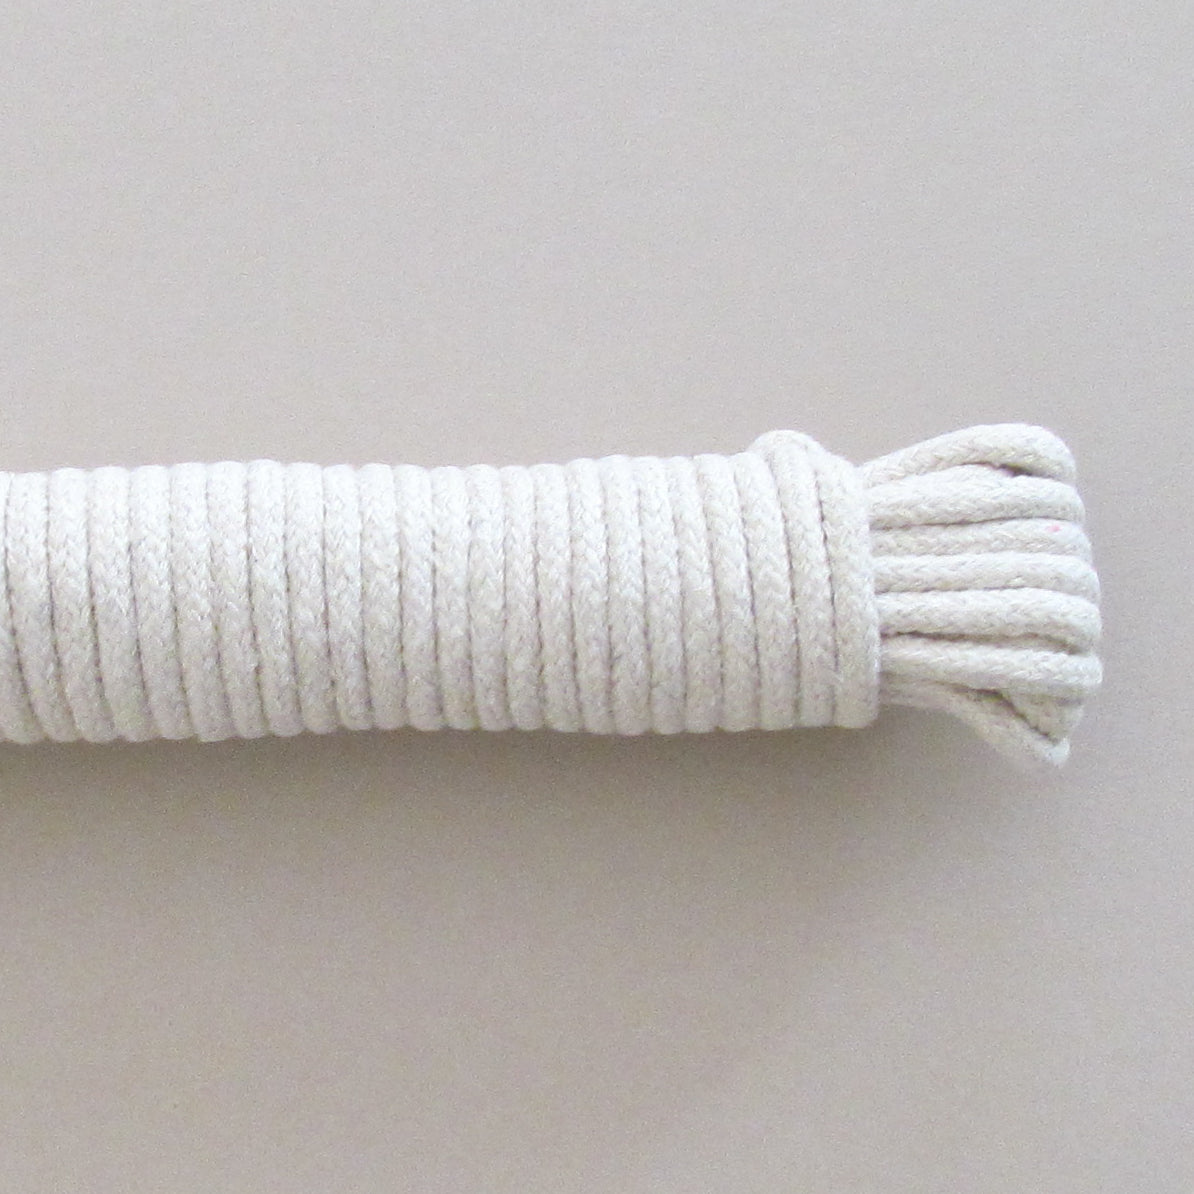 Traditional Long Life Cotton Clothesline Pulley Rope 10m Brit Locker